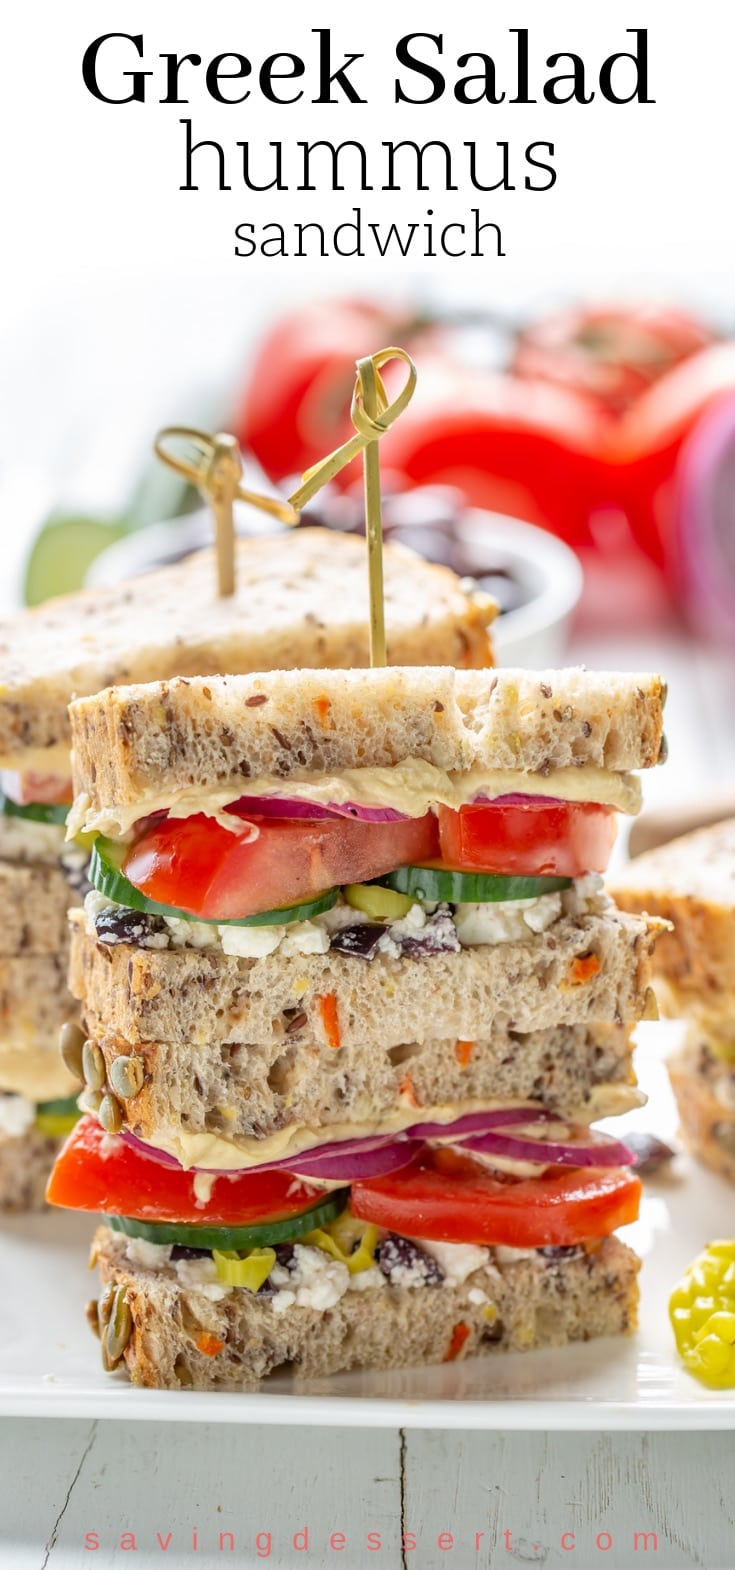 This might look like a plain old veggie sandwich, but it's so much more! The Greek flavors are bright, briny, crisp, fresh and delicious! #hummussandwich #greeksaladsandwich #greeksandwich #vegetariansandwich #makeaheadsandwich #picnicsandwich #greekfood